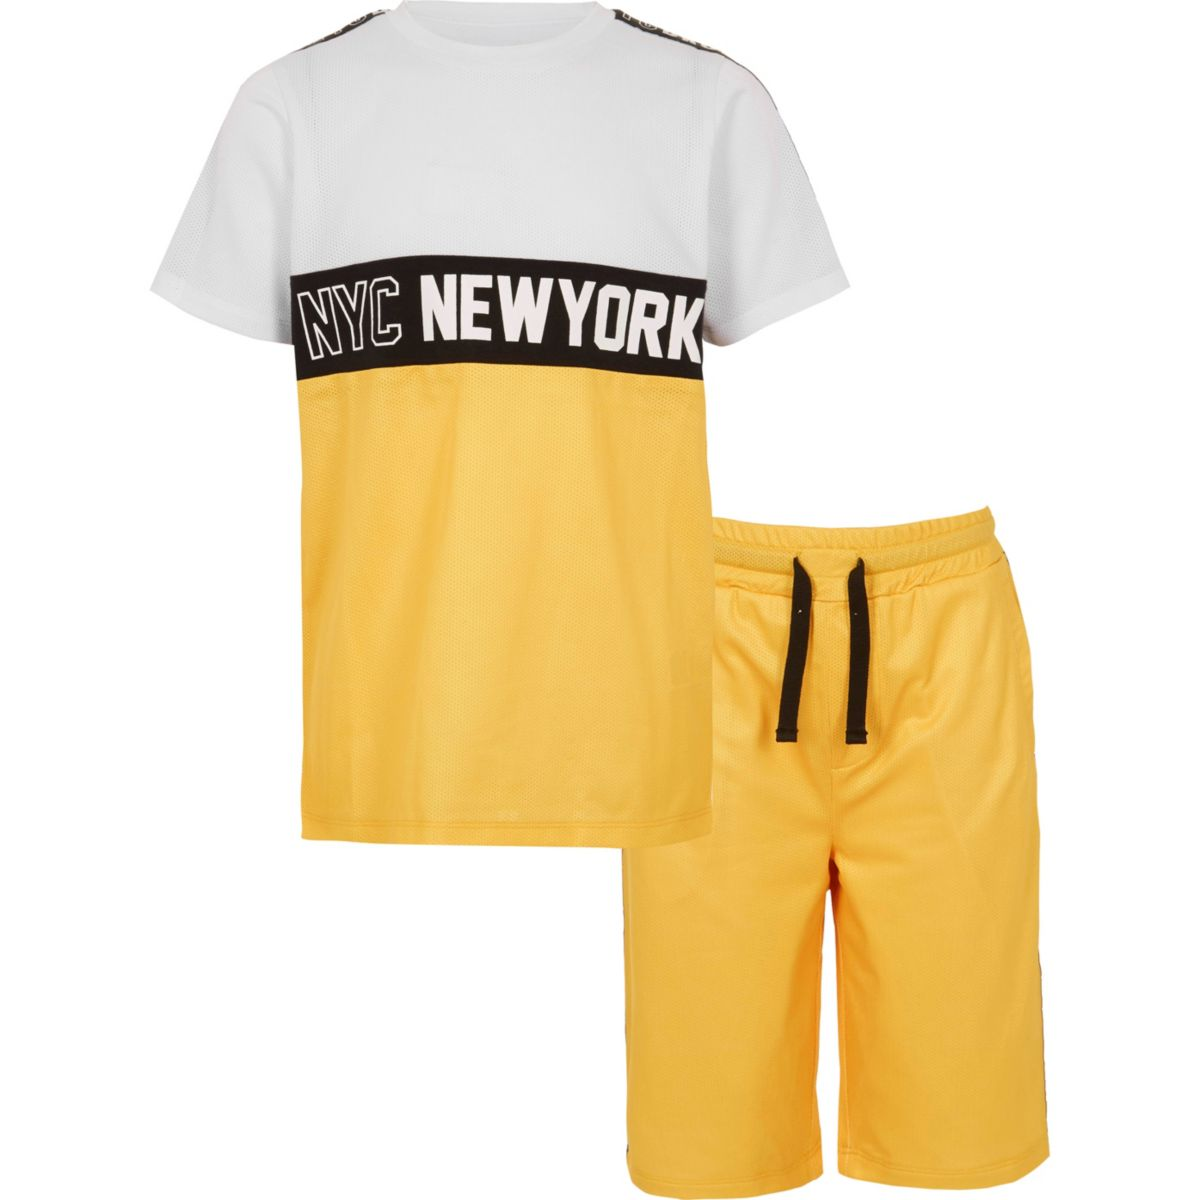 Boys yellow 'NYC' mesh T-shirt outfit